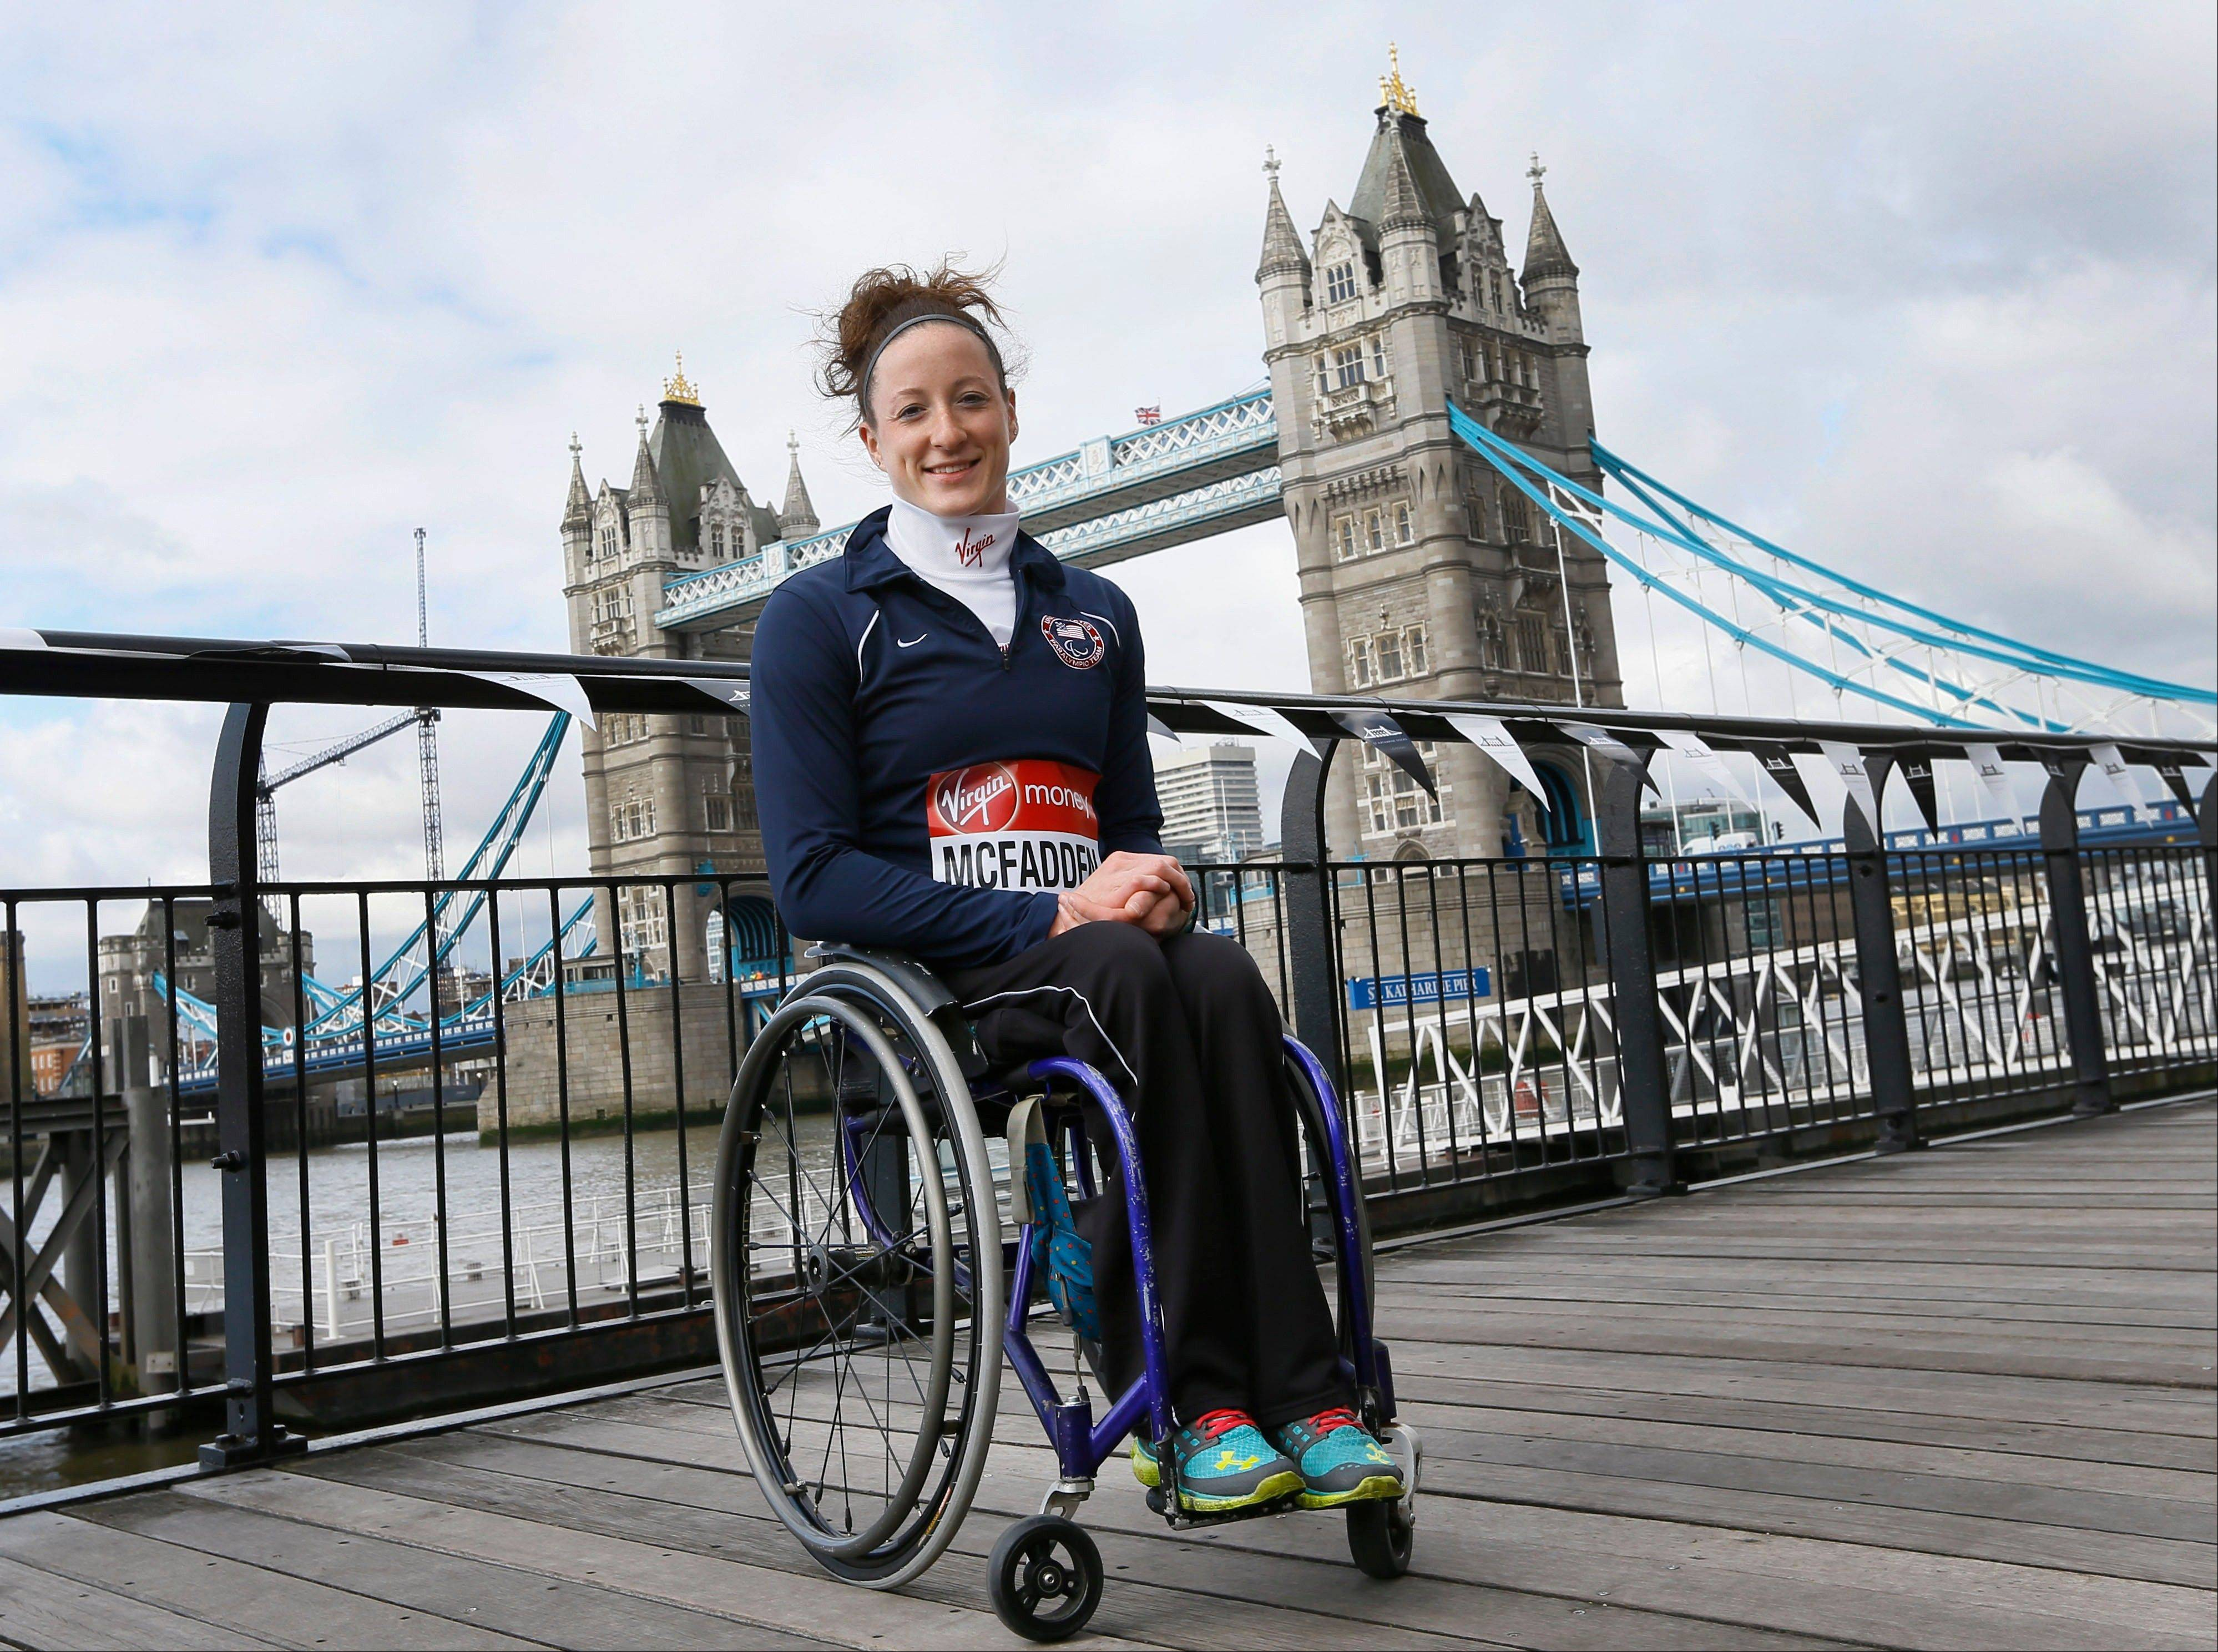 United States elite wheelchair athlete Tatyana McFadden, and winner of the Women's Wheelchair Boston Marathon, will race in Sunday's London Marathon despite security fears in the wake of the bomb blasts in the Boston.